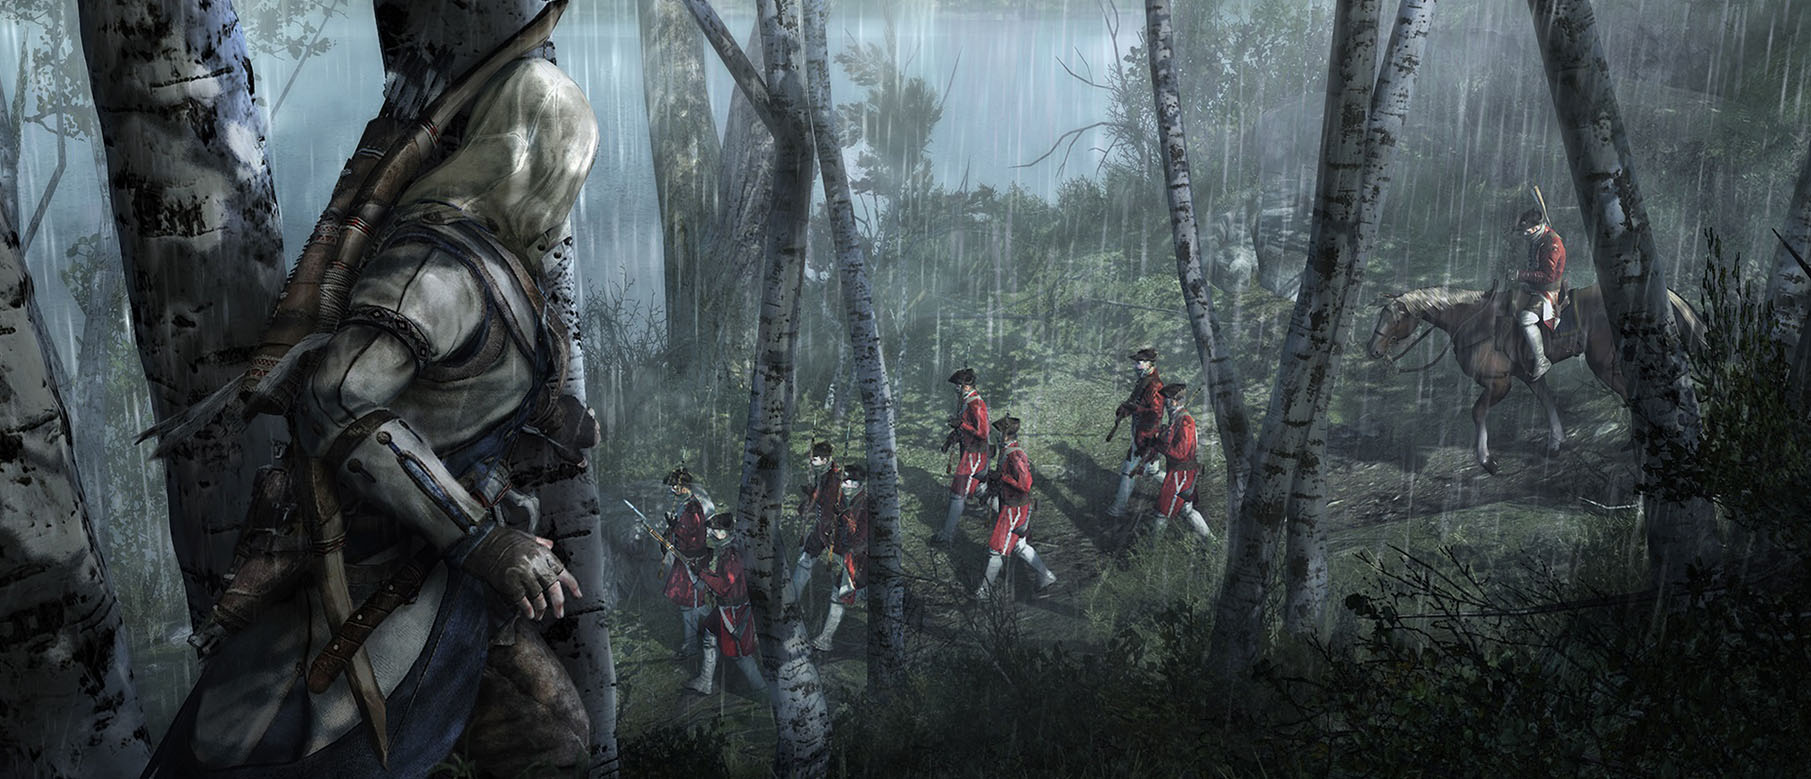 Изображение к Не забудьте забрать свою копию Assassin's Creed III